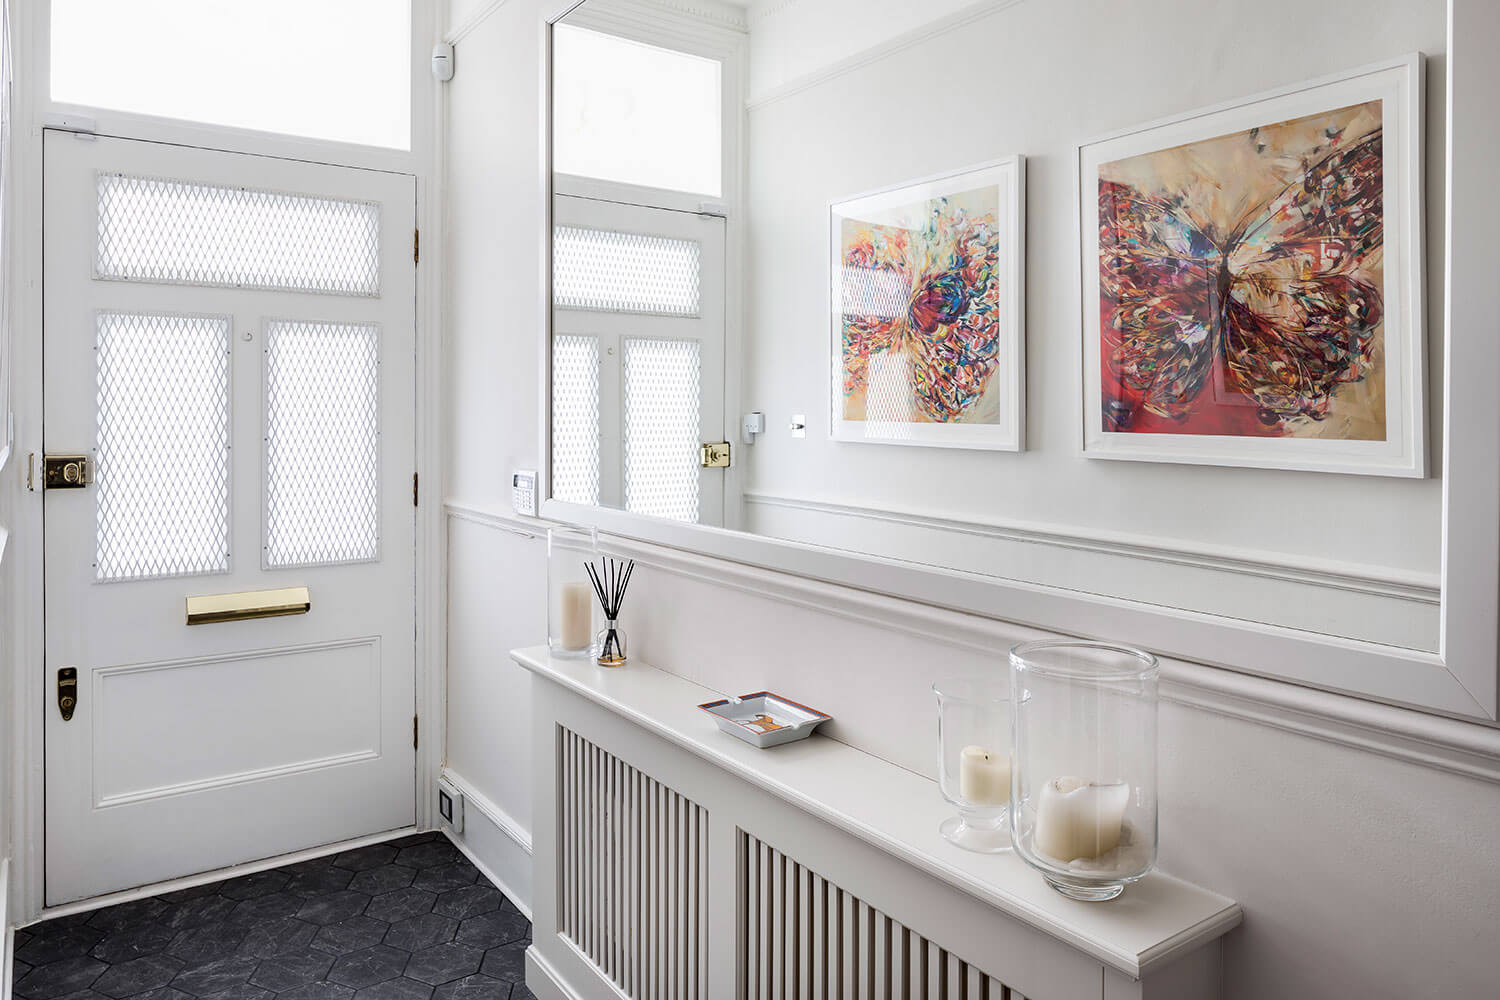 Melody Road Wandsworth | Interior Design London by Penman Interiors